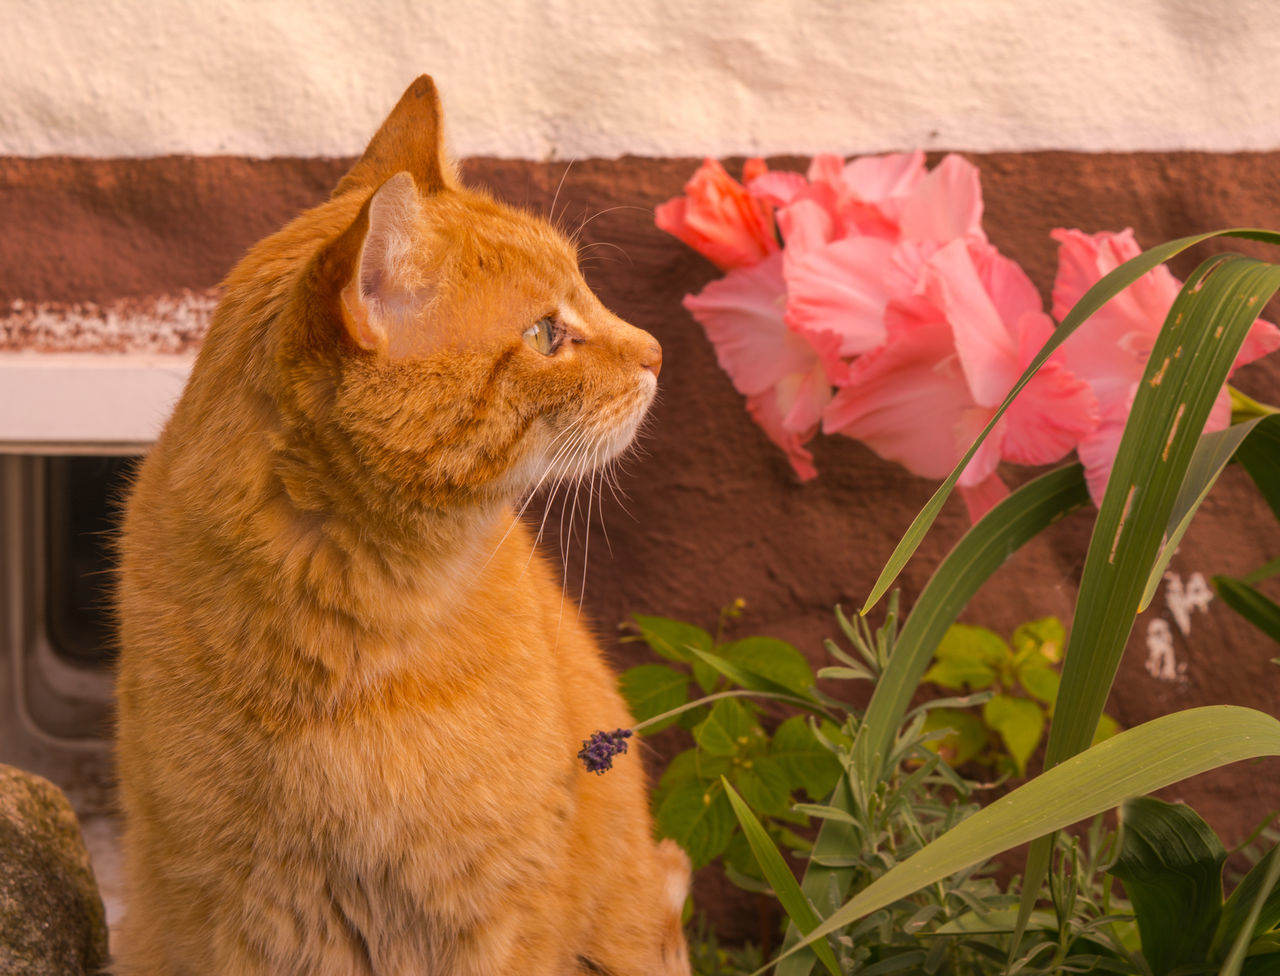 domestic cat, pets, one animal, domestic animals, animal themes, feline, mammal, no people, ginger cat, whisker, day, indoors, flower, nature, close-up